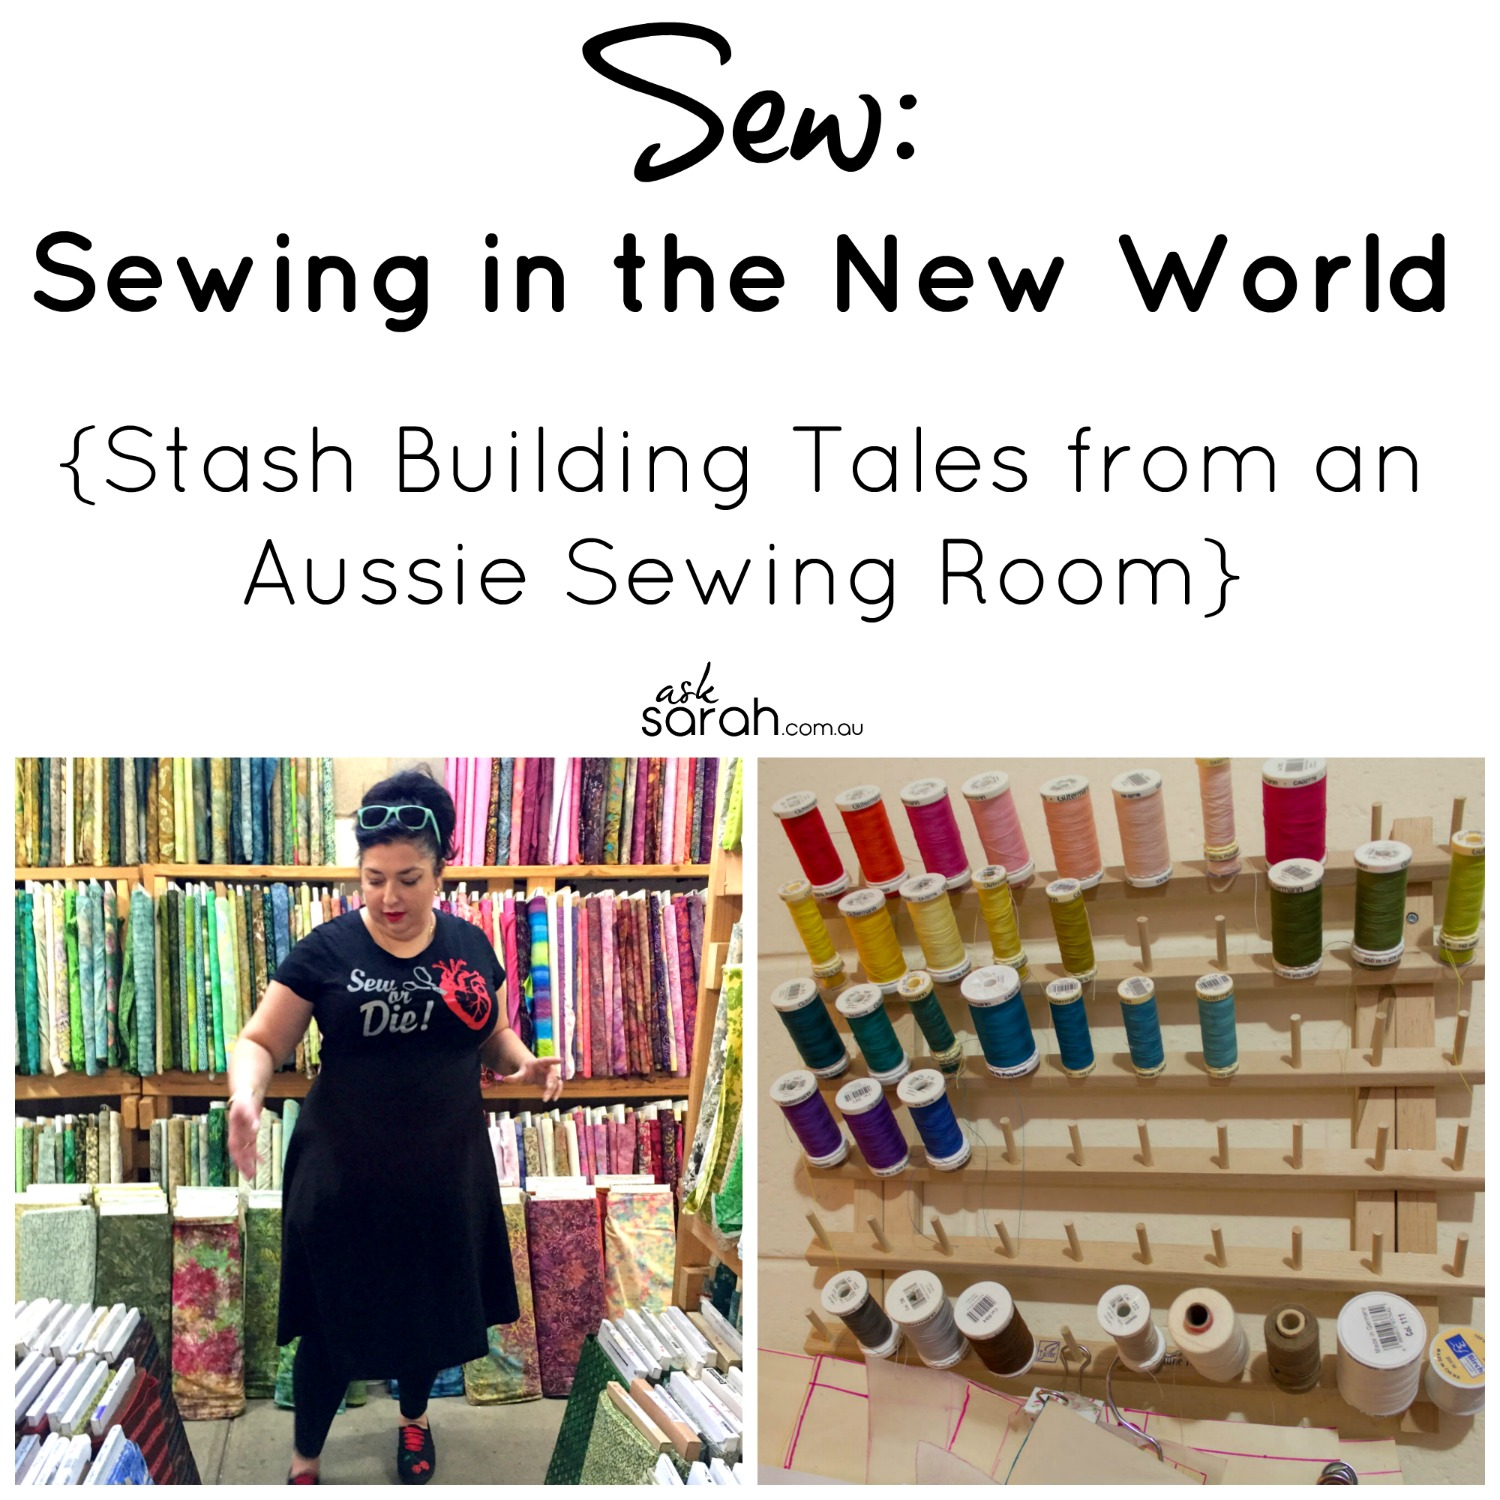 sew-sewing-in-the-new-world-stash-building-tales-from-an-aussie-sewing-room